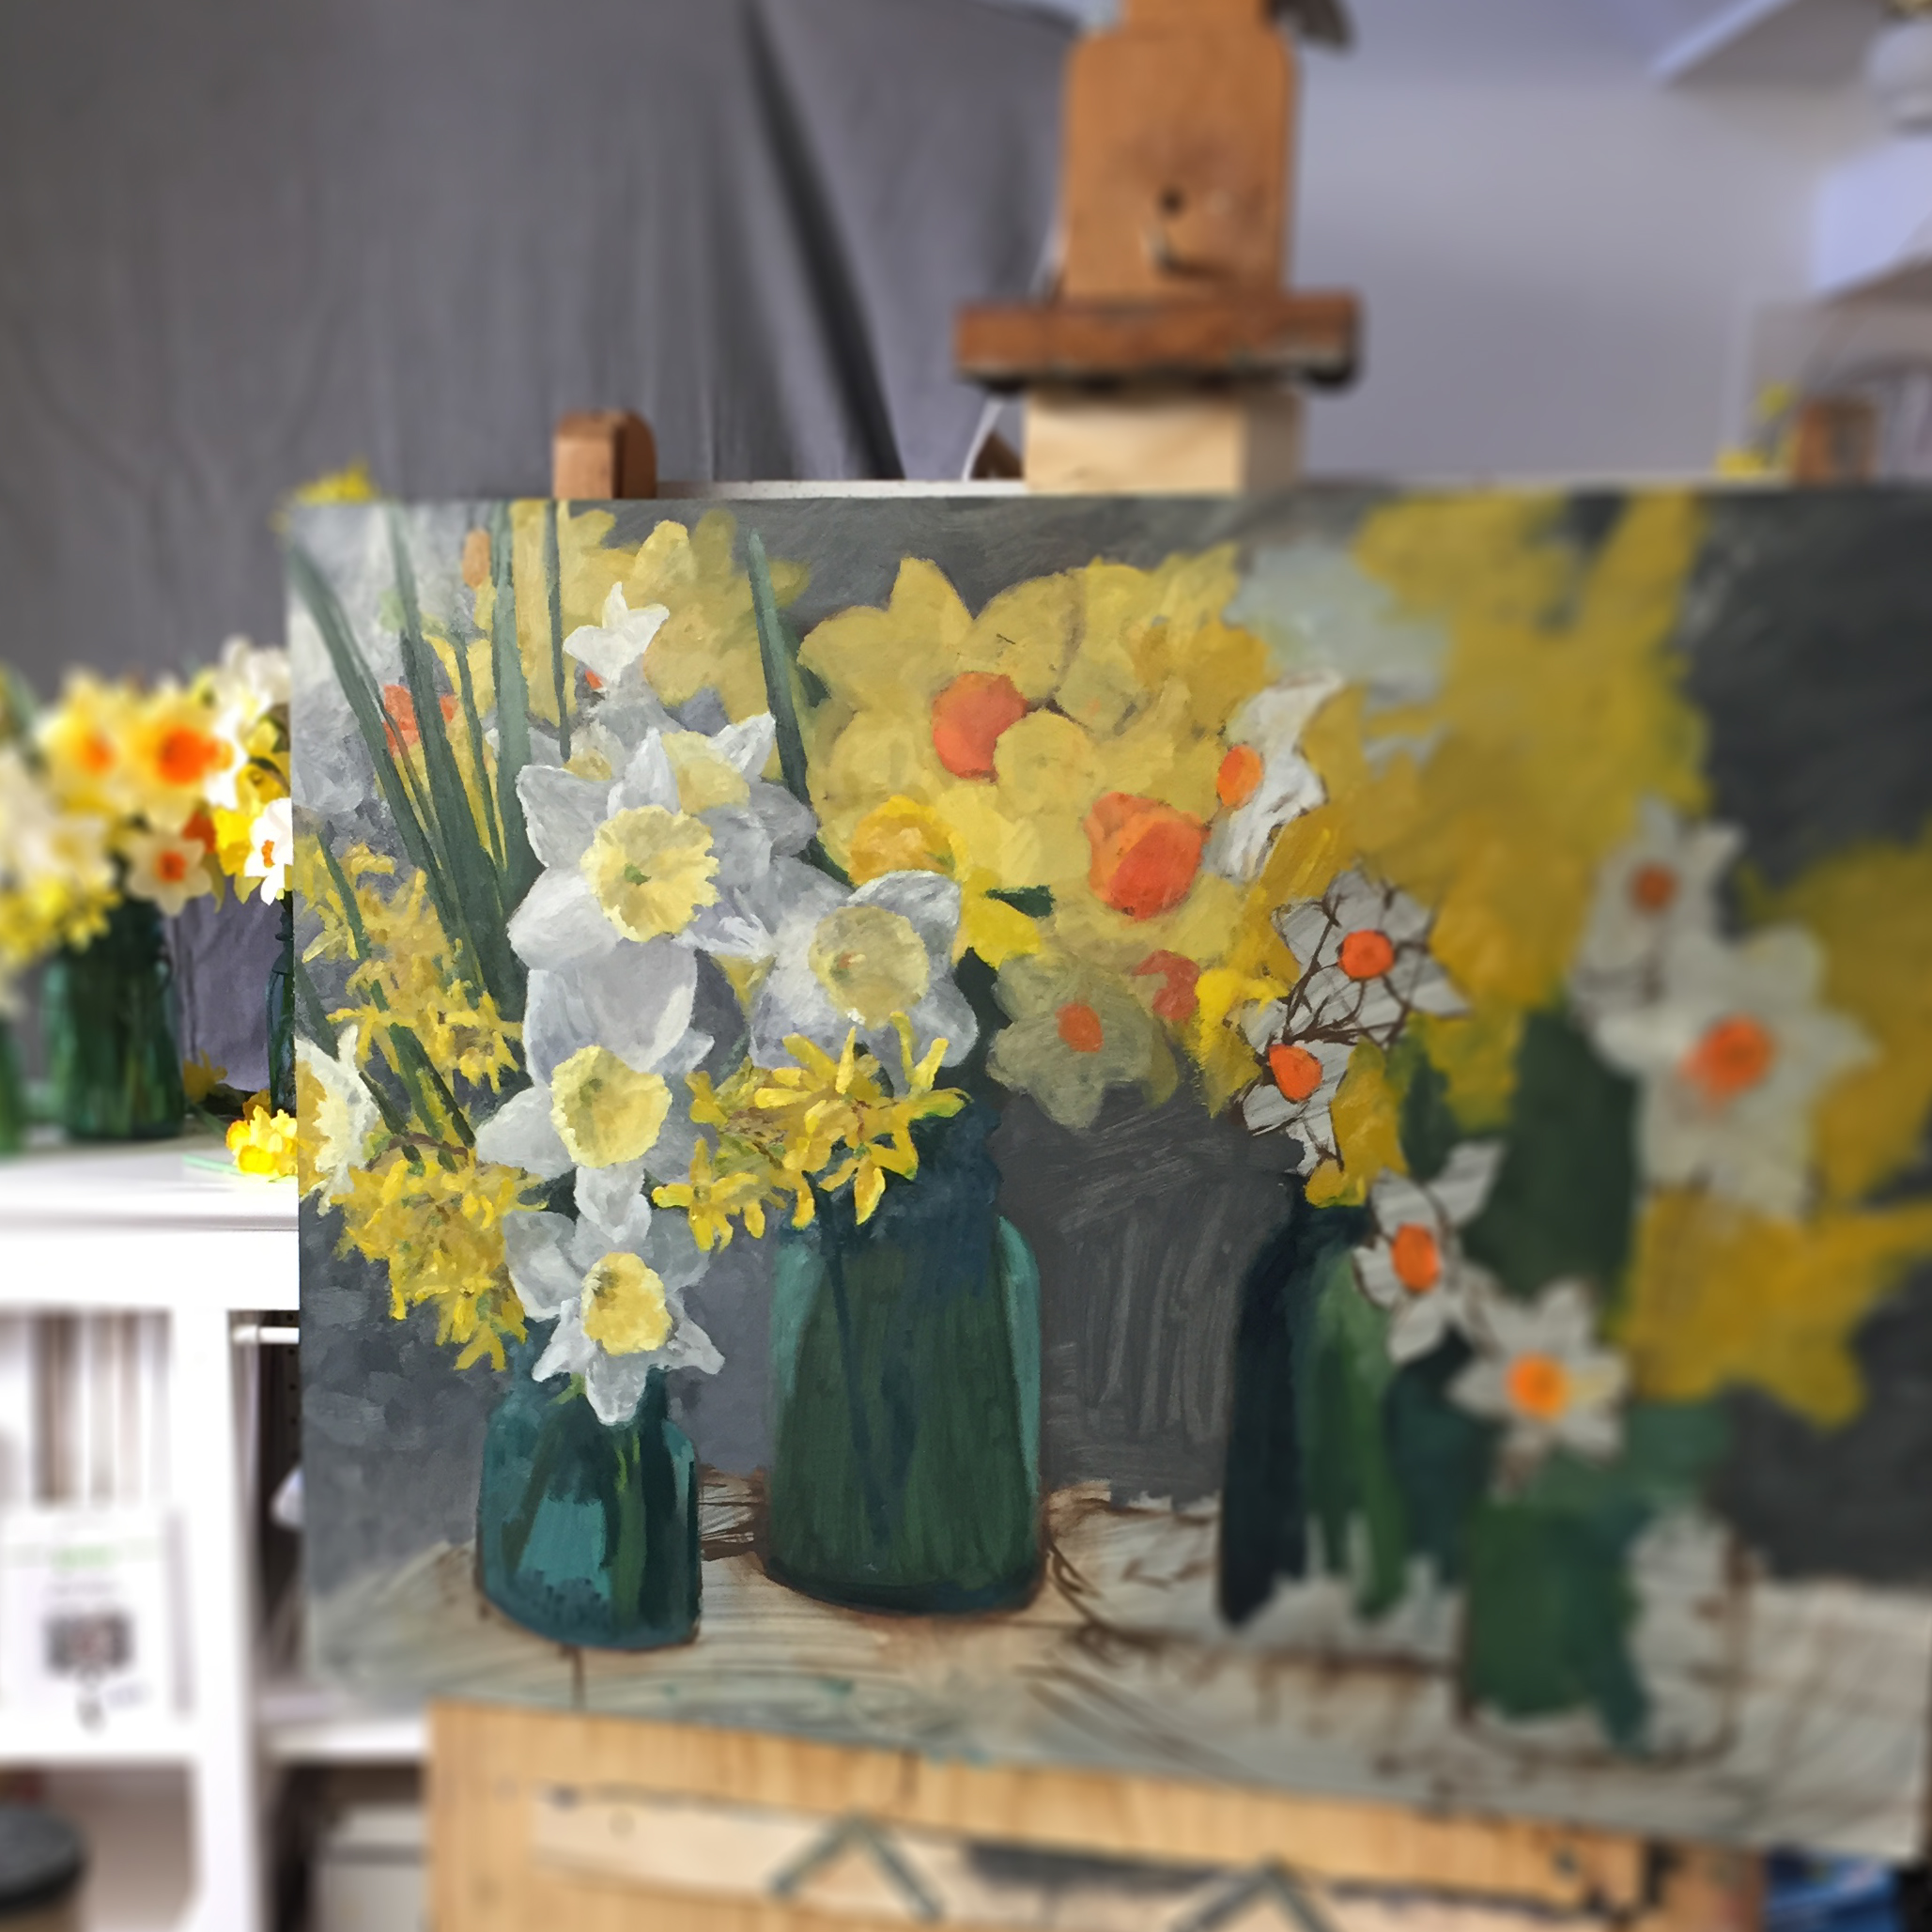 Day 91: A work in progress of an oil painting of daffodils